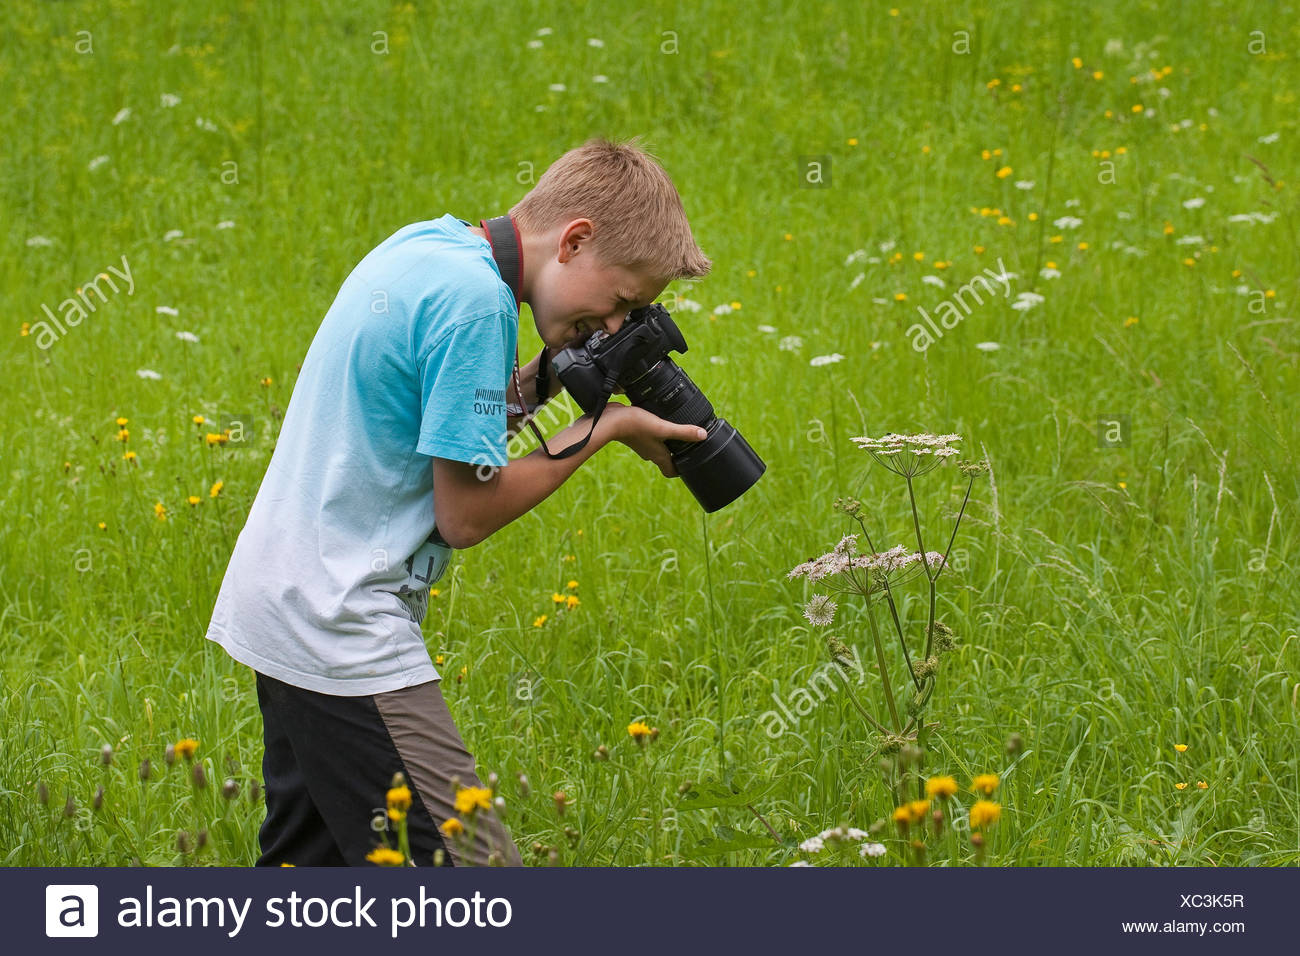 boy photographs in nature, Germany - Stock Image